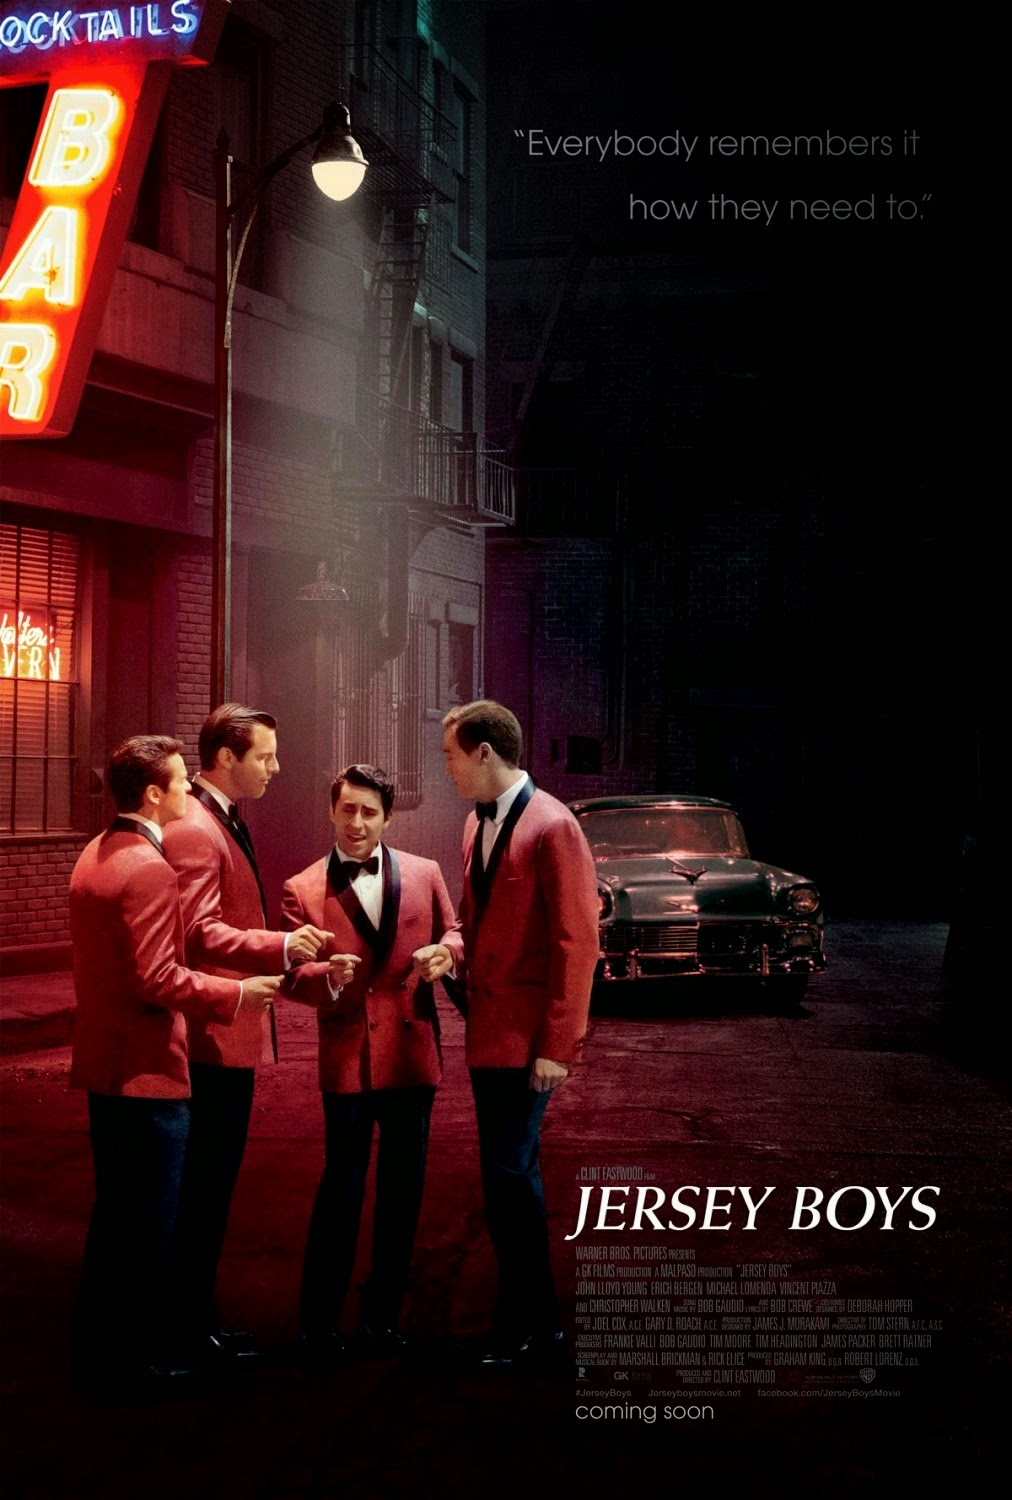 JERSEY BOYS - (2014) Clint Eastwood